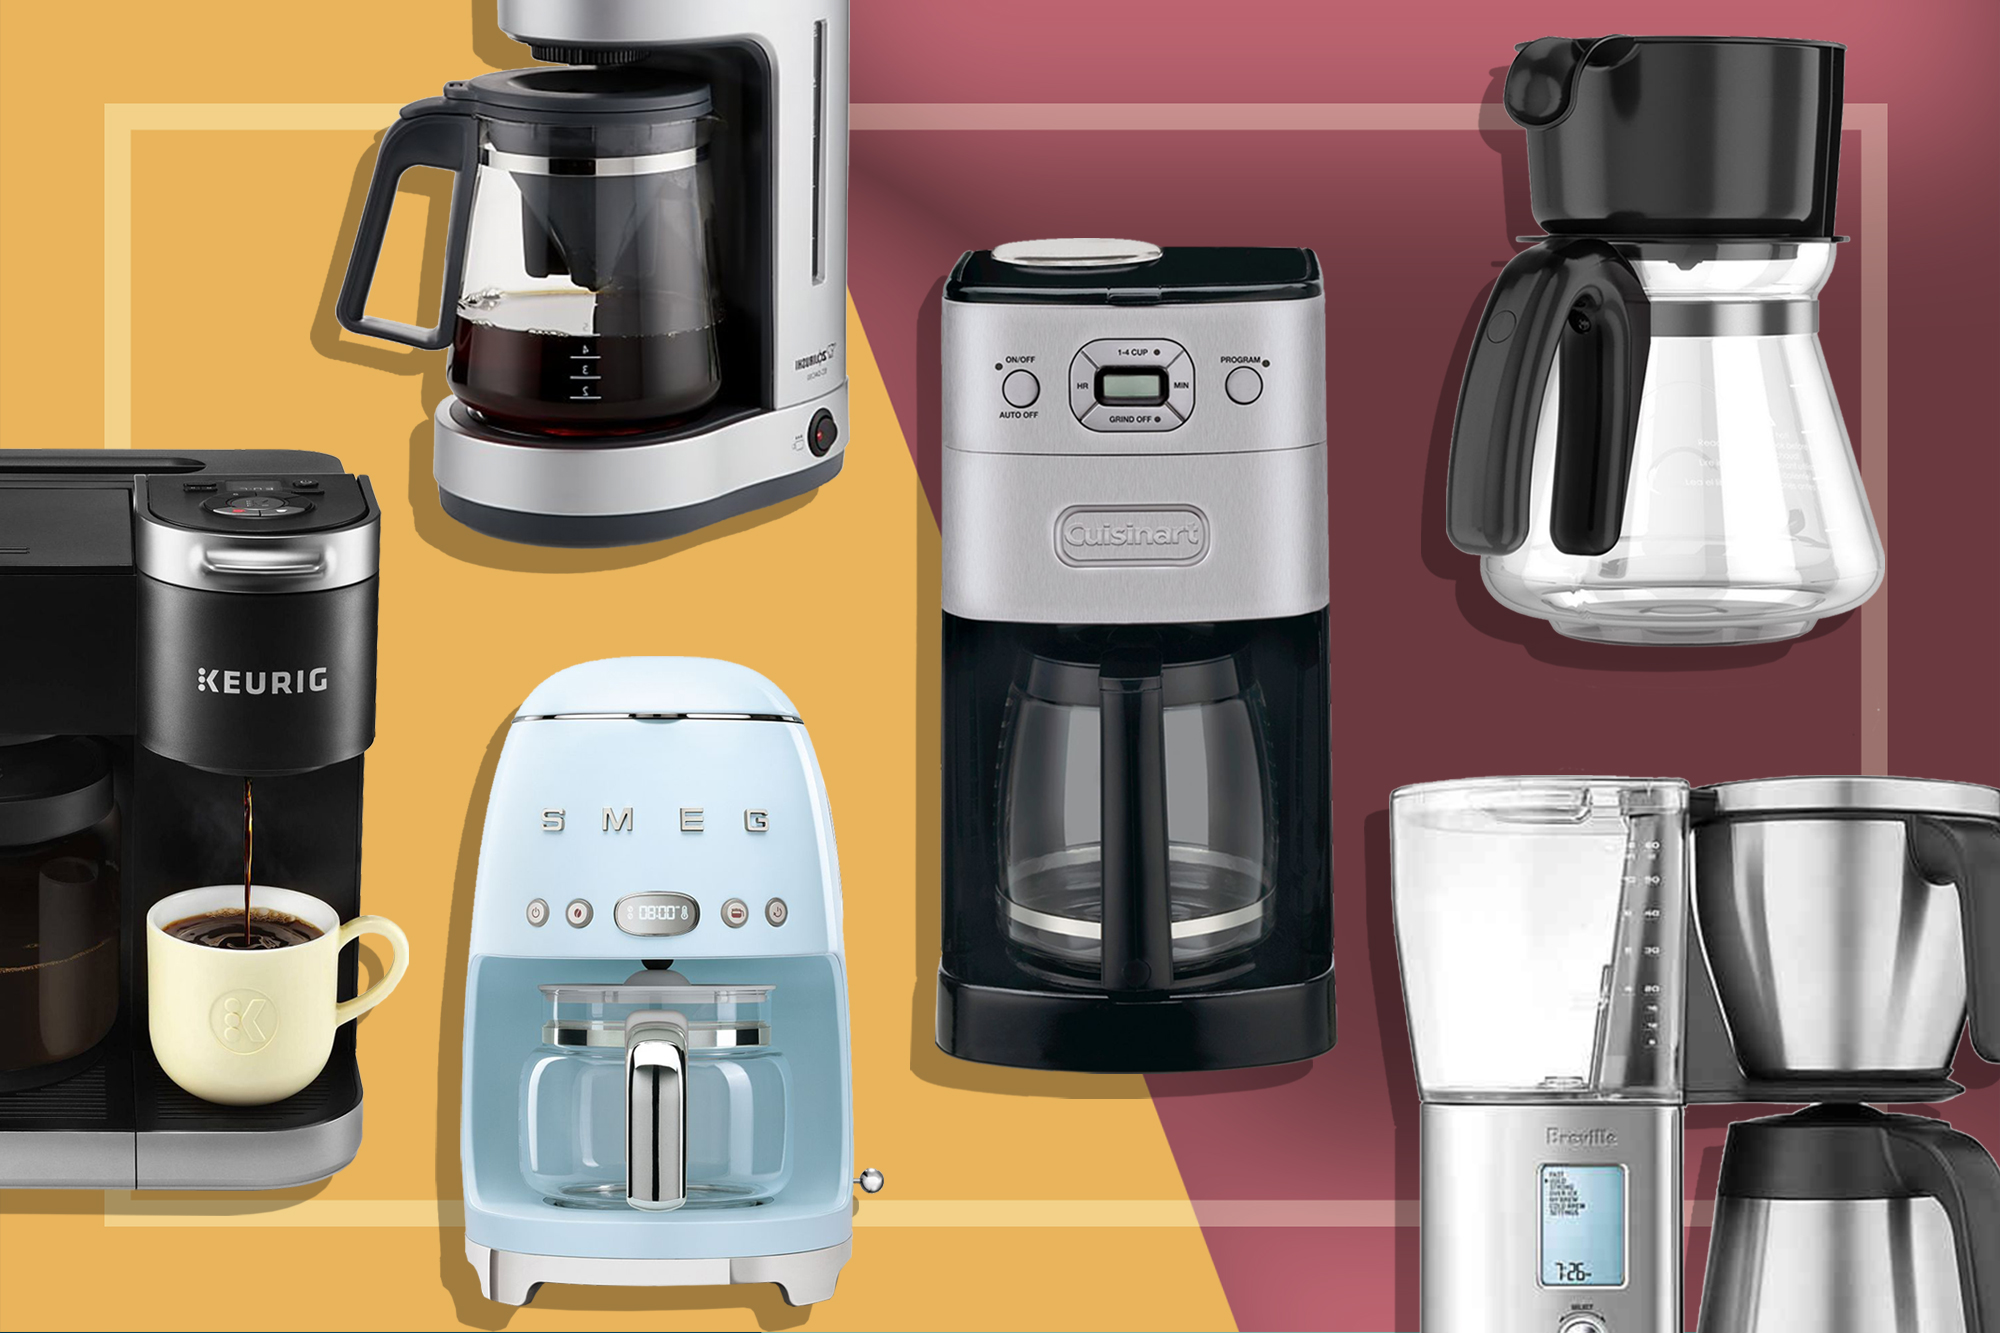 8 Best Drip Coffee Makers for a Great Morning Brew, According to Reviews